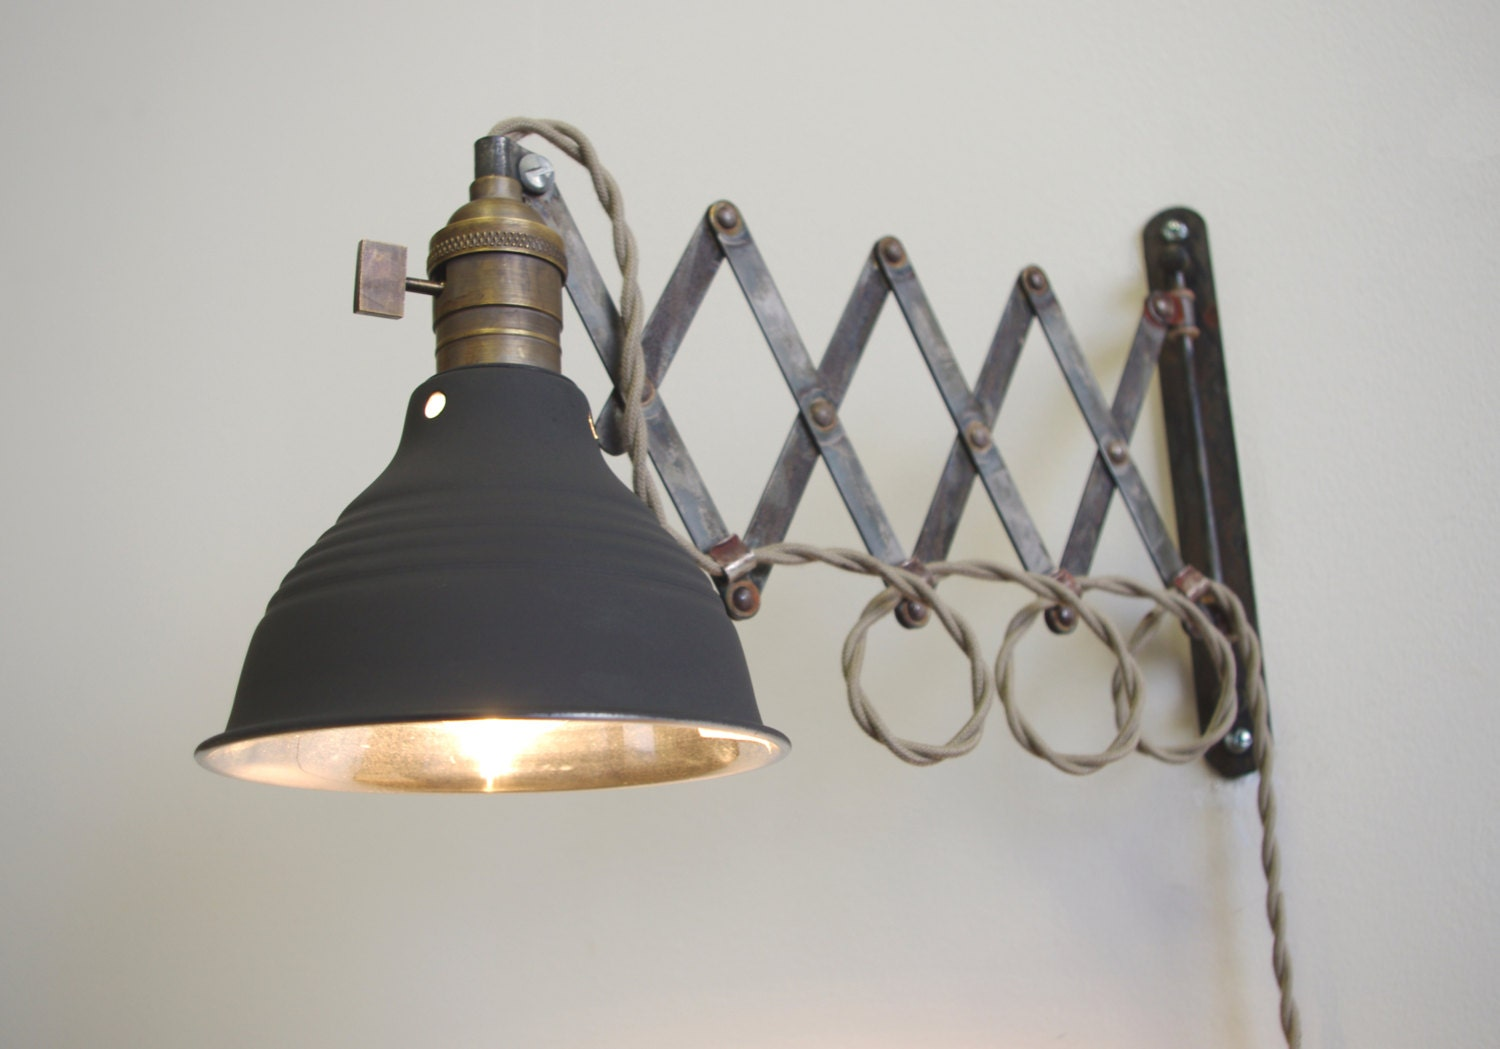 Wall Mounted Scissor Lamp : Scissor Lamp Industrial Articulating Wall Lamp by LongMadeCo